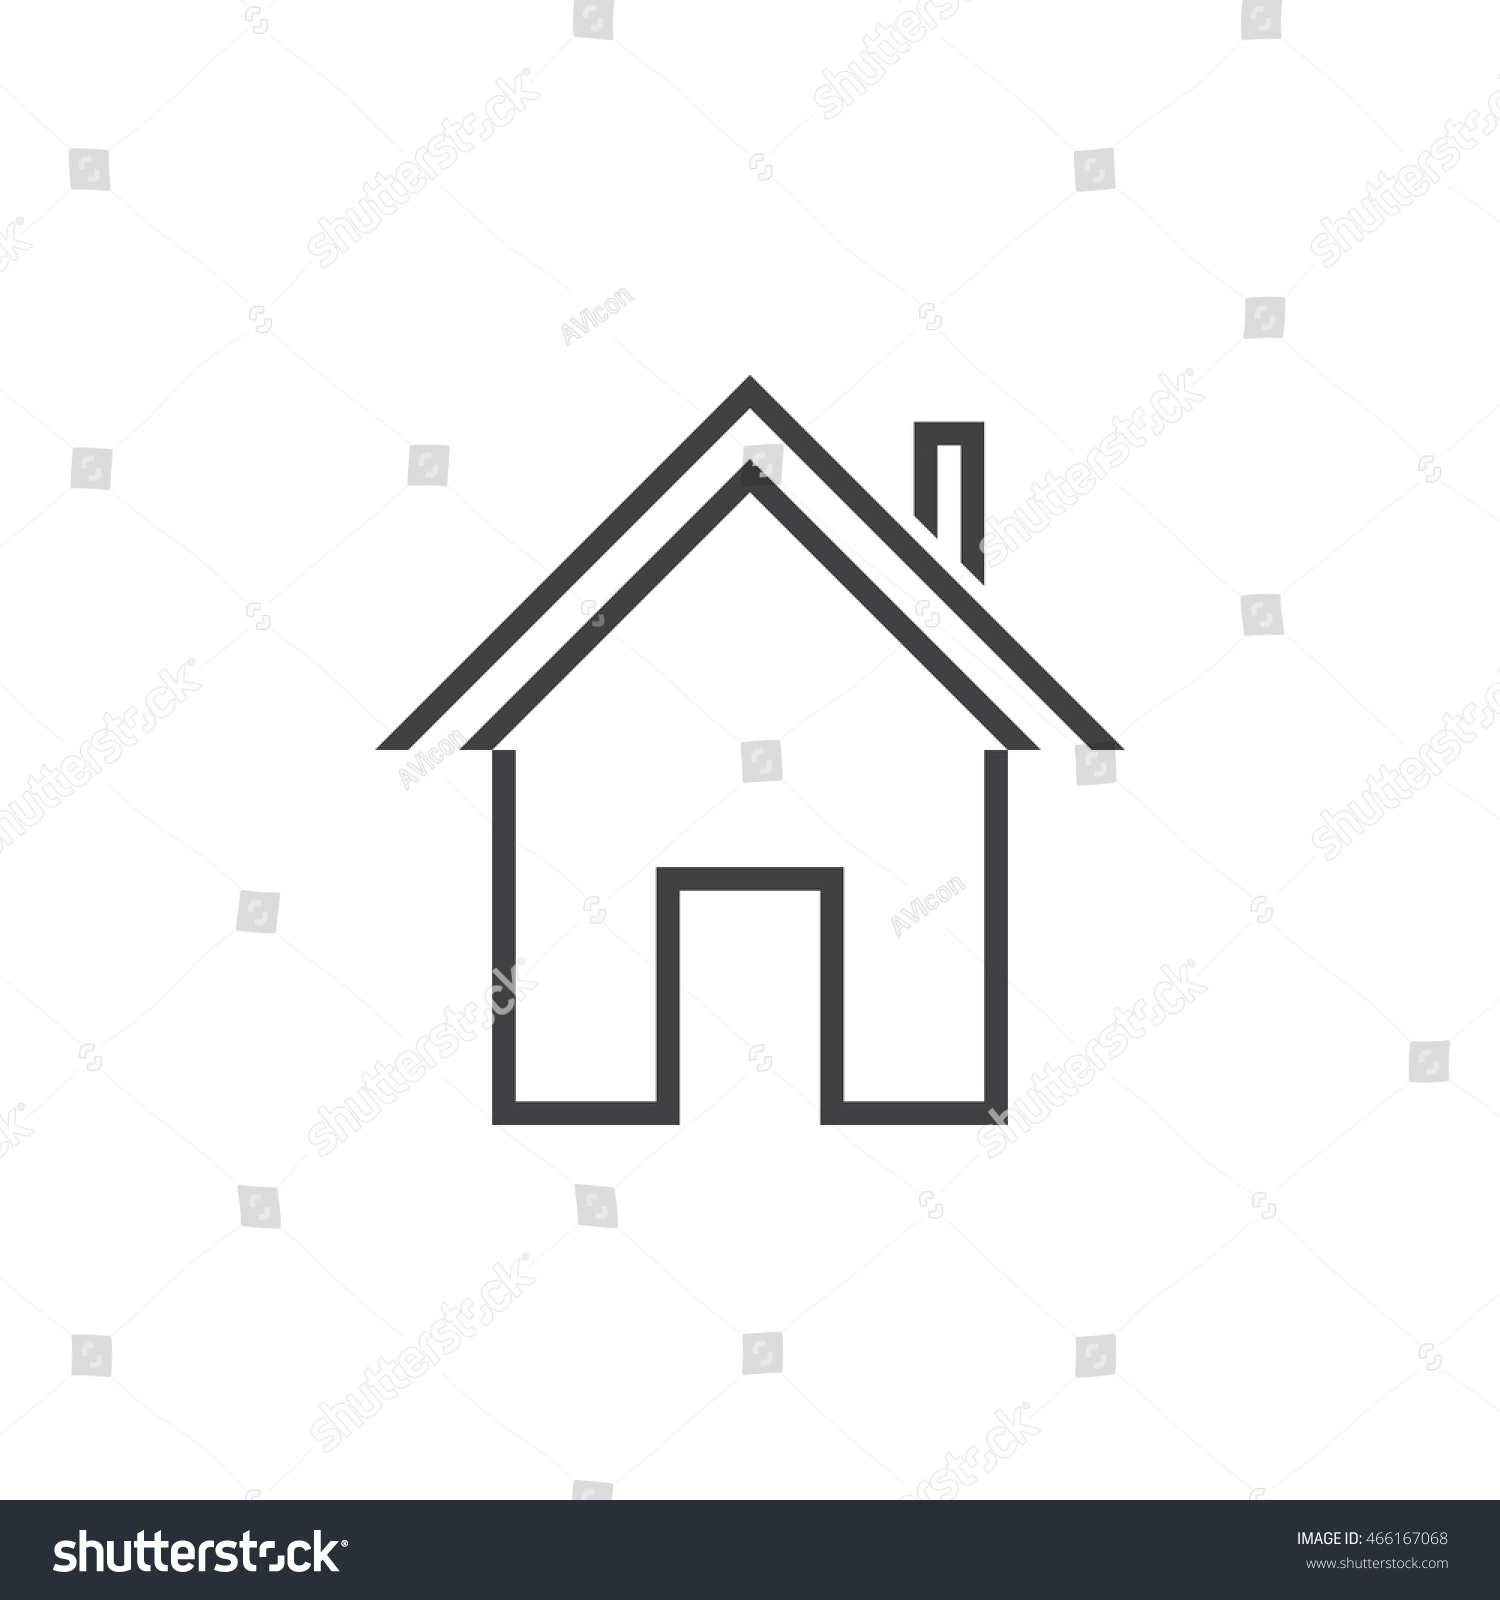 House outline picture - Home Line Icon House Outline Vector Logo Illustration Linear Pictogram Isolated On White